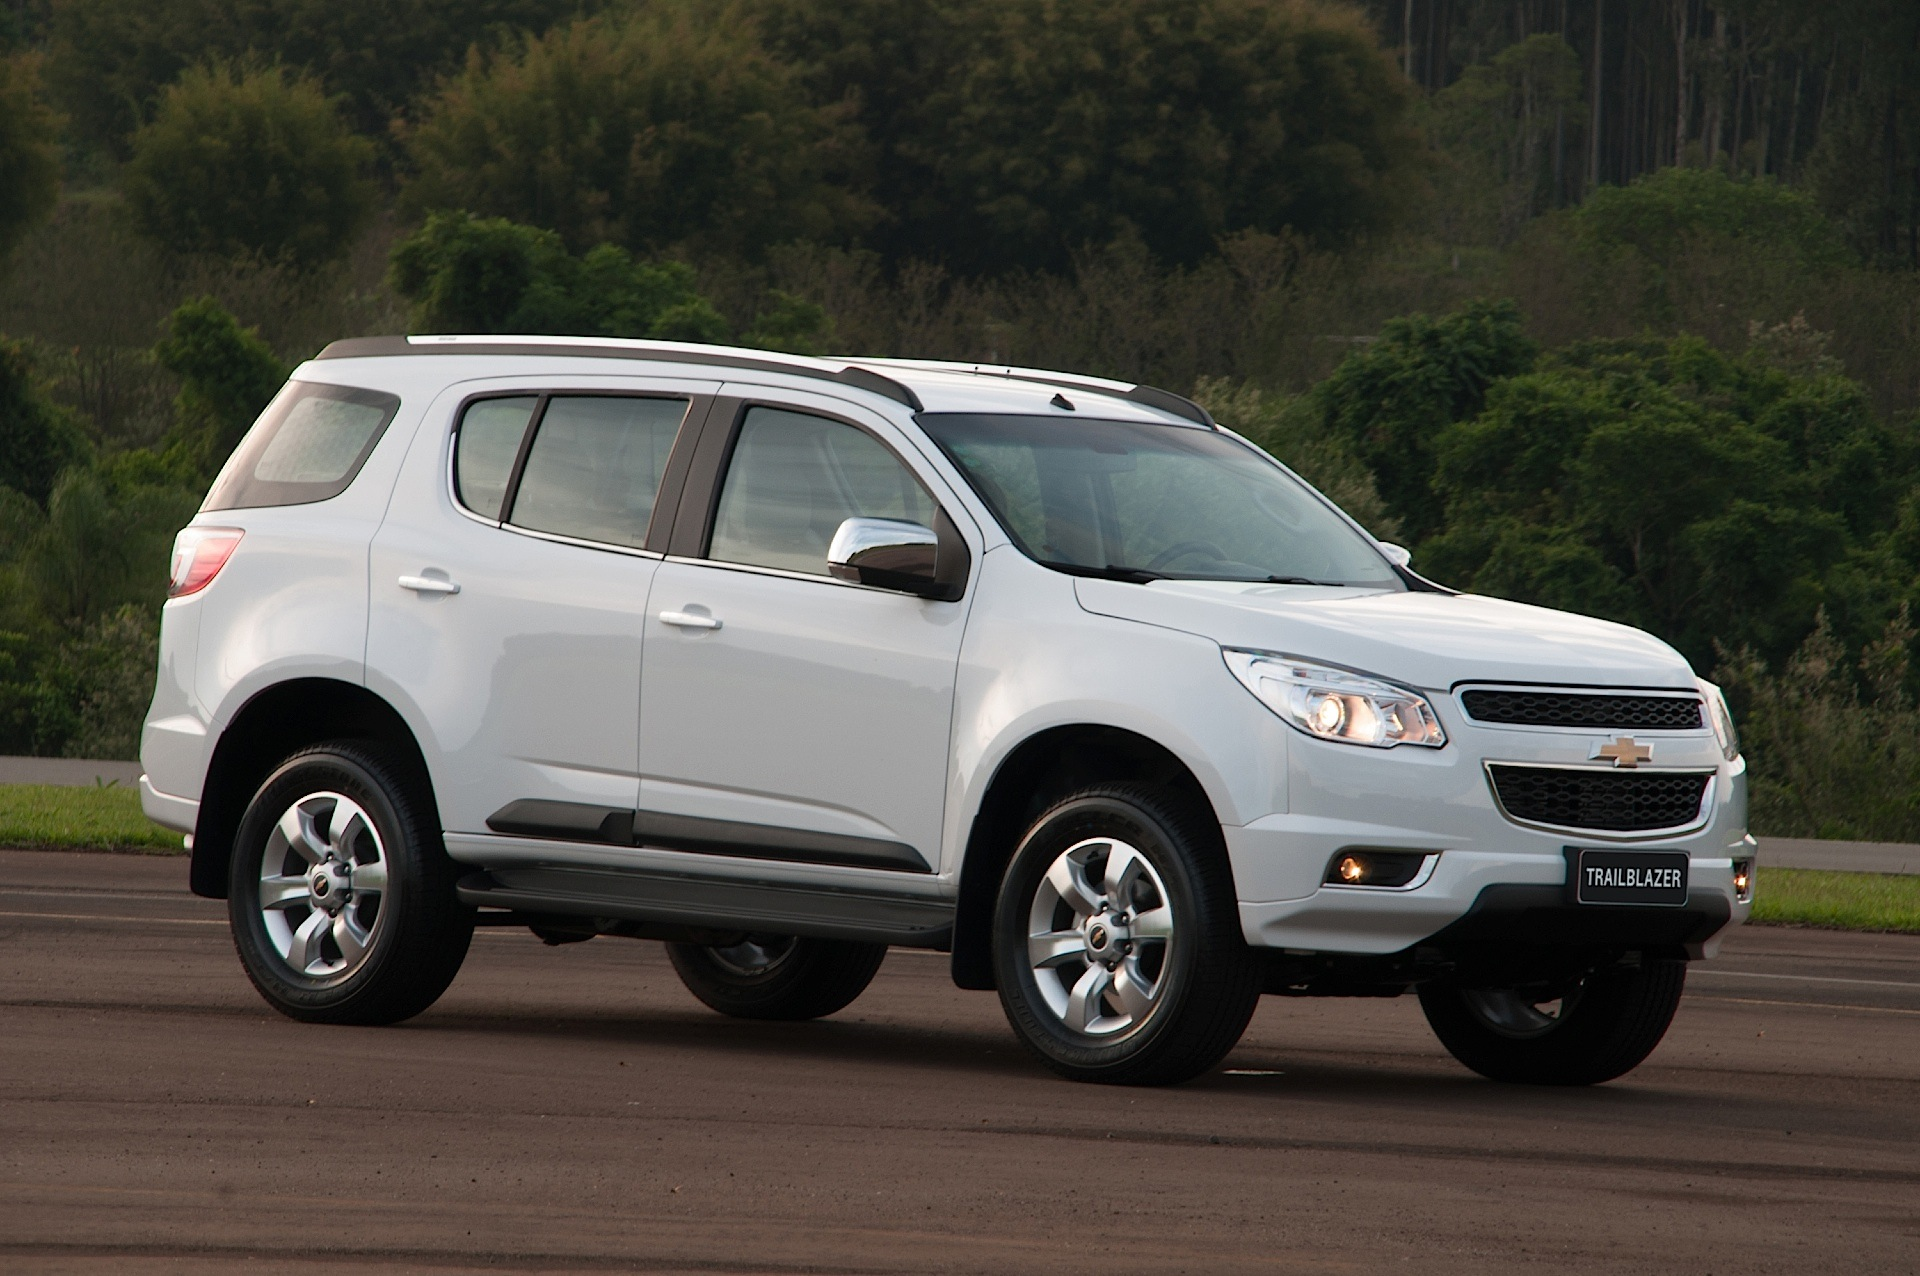 CHEVROLET TrailBlazer specs - 2012, 2013, 2014, 2015, 2016 ...